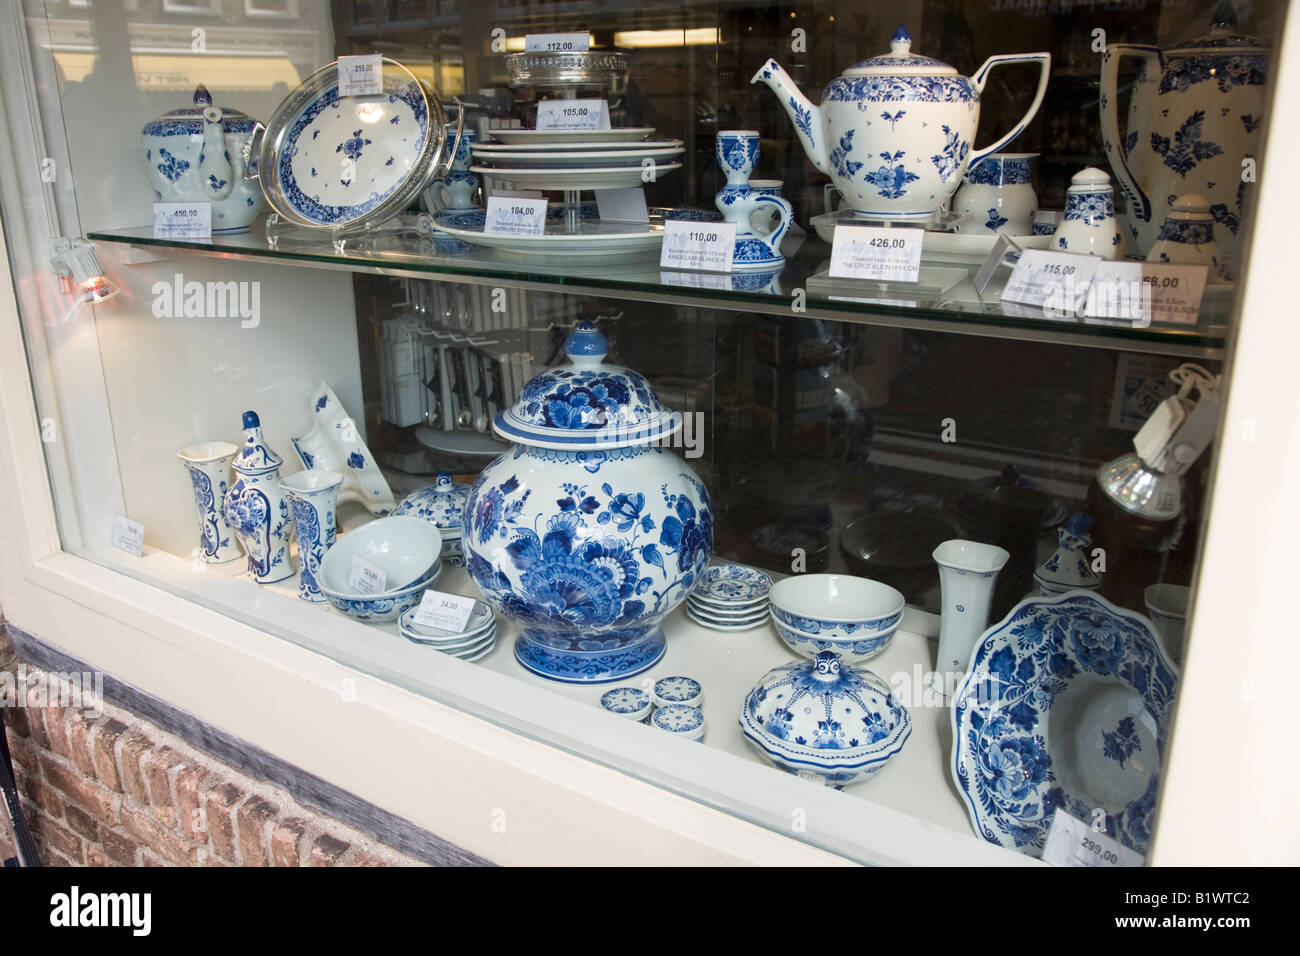 Royal Delftware pottery on display in a shop window in Delft. Netherlands. - Stock Image